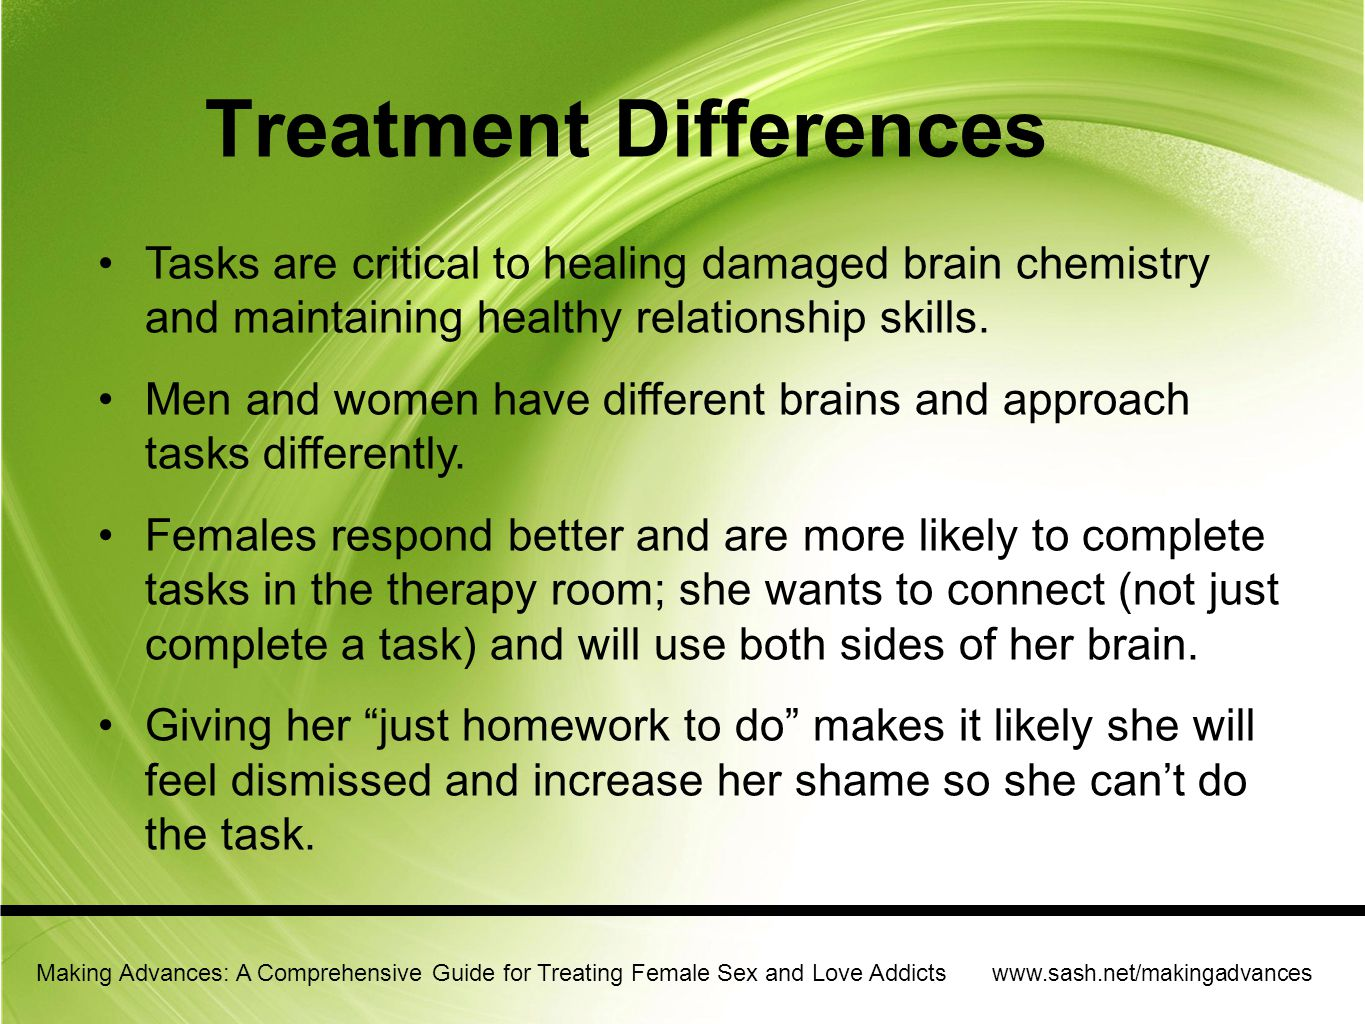 Treatment Differences